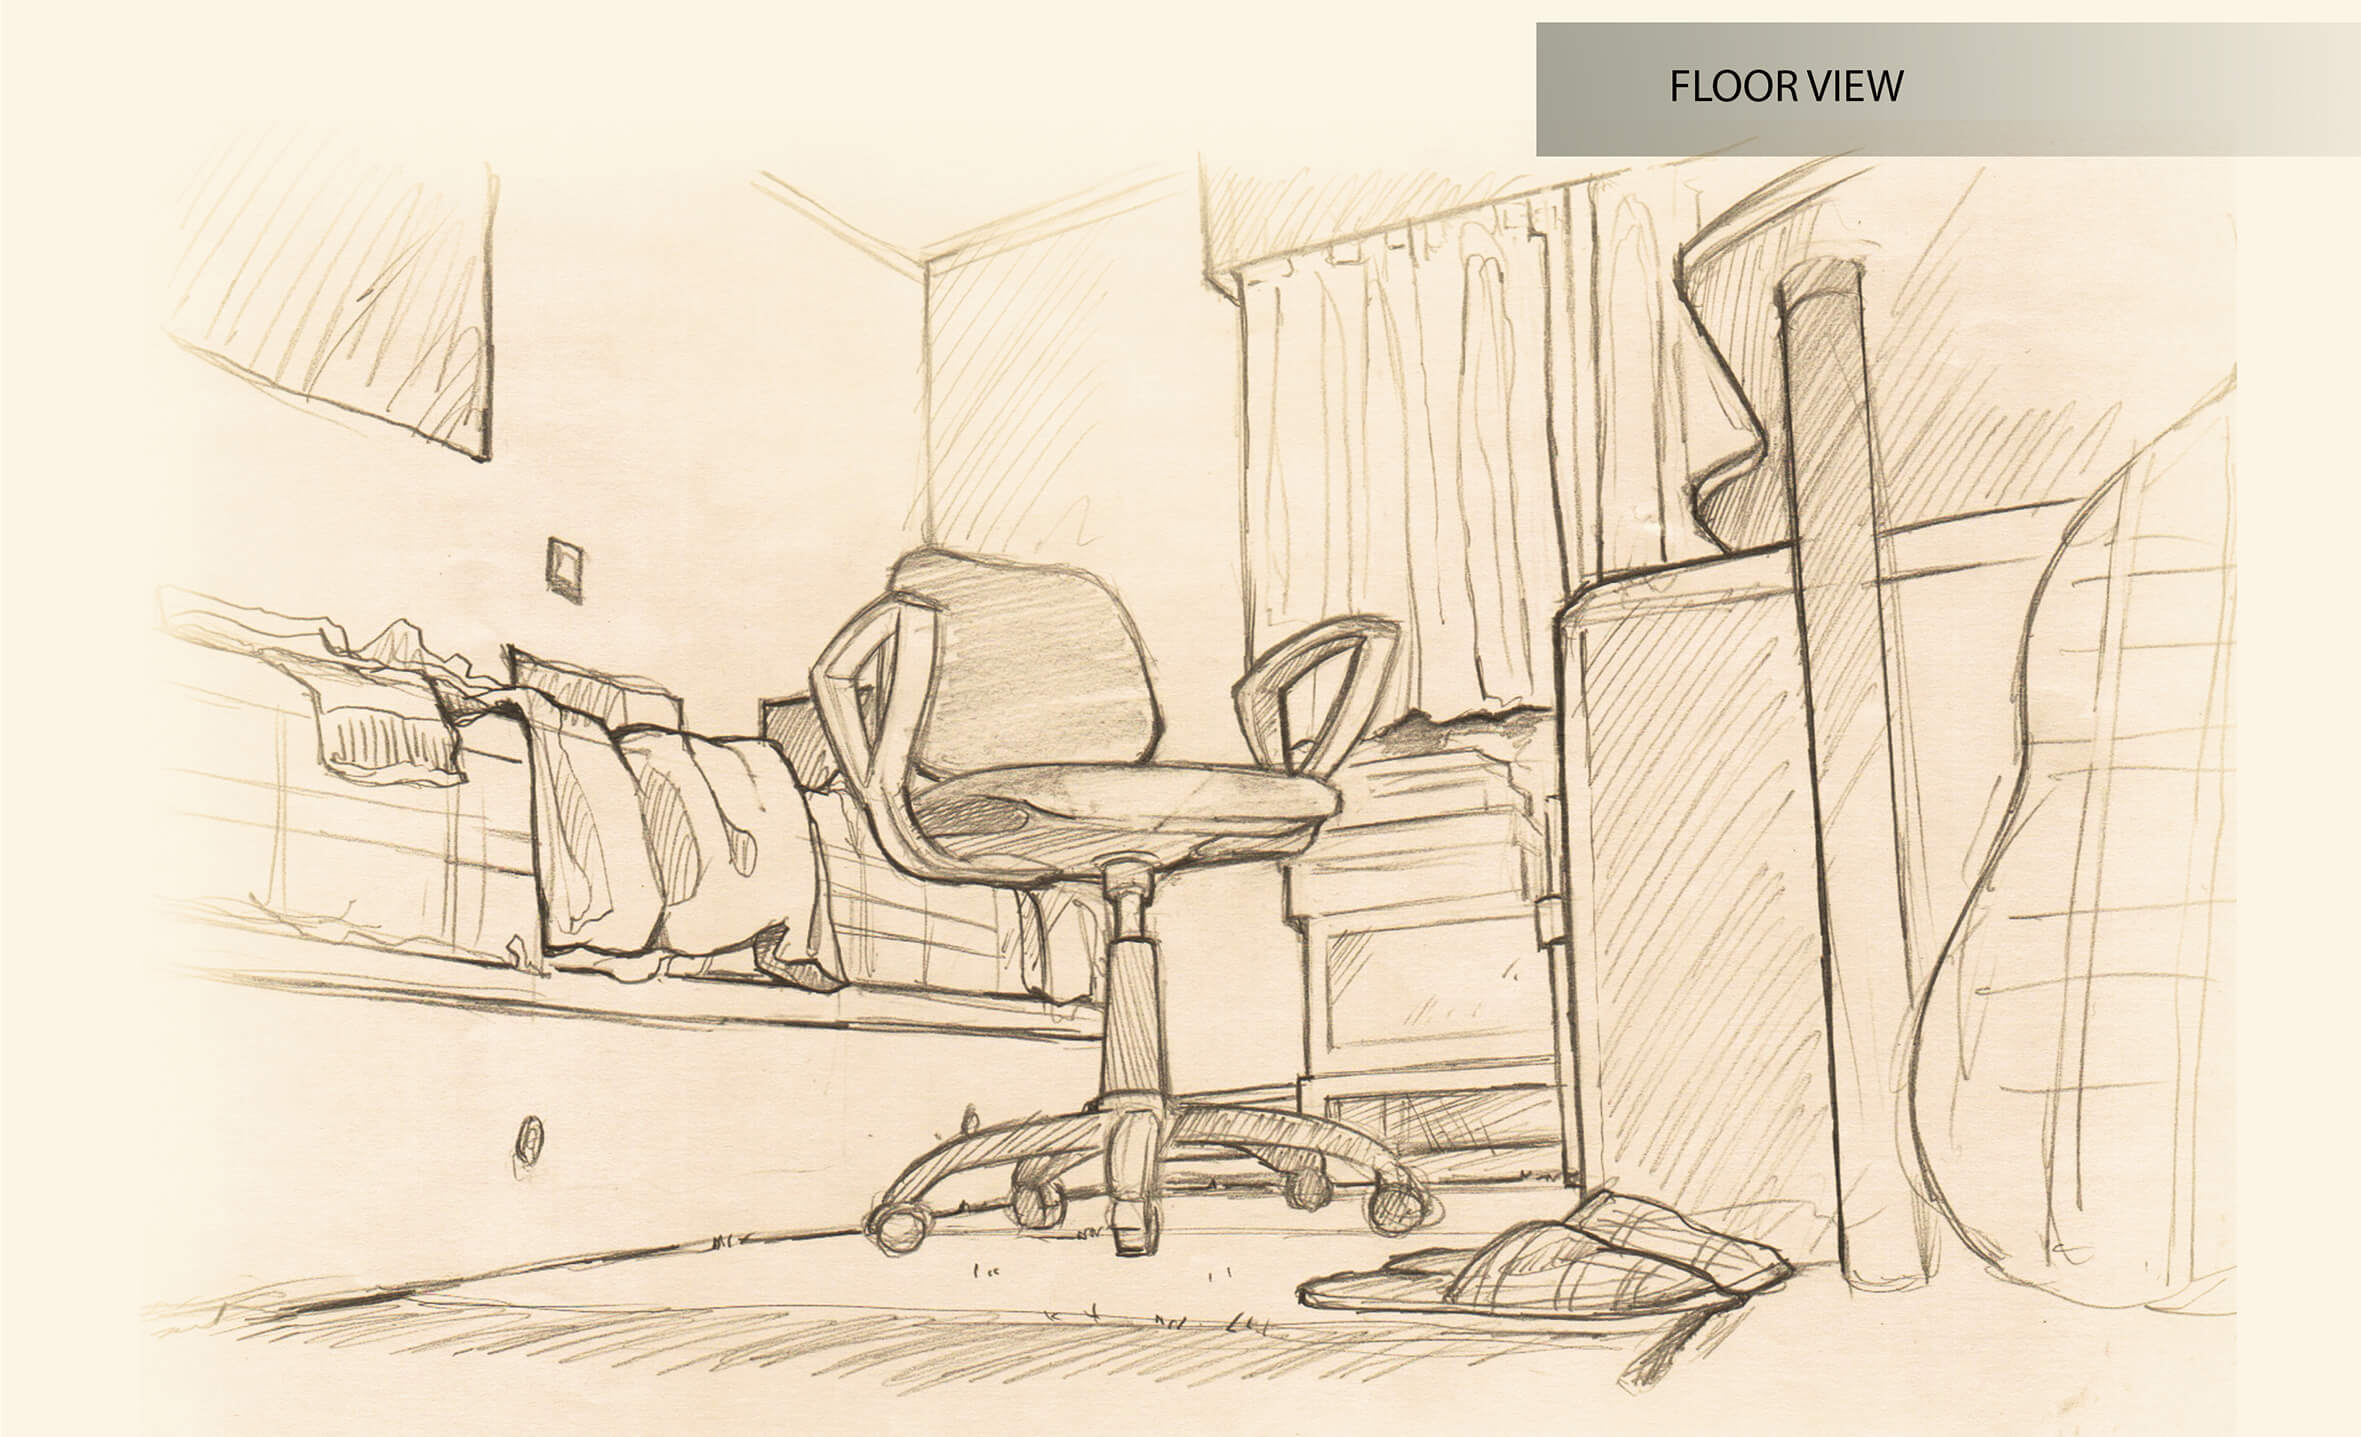 Black-and-white view of a sketched bedroom seen from the floor. A wheeled computer chair is the focus of the piece.